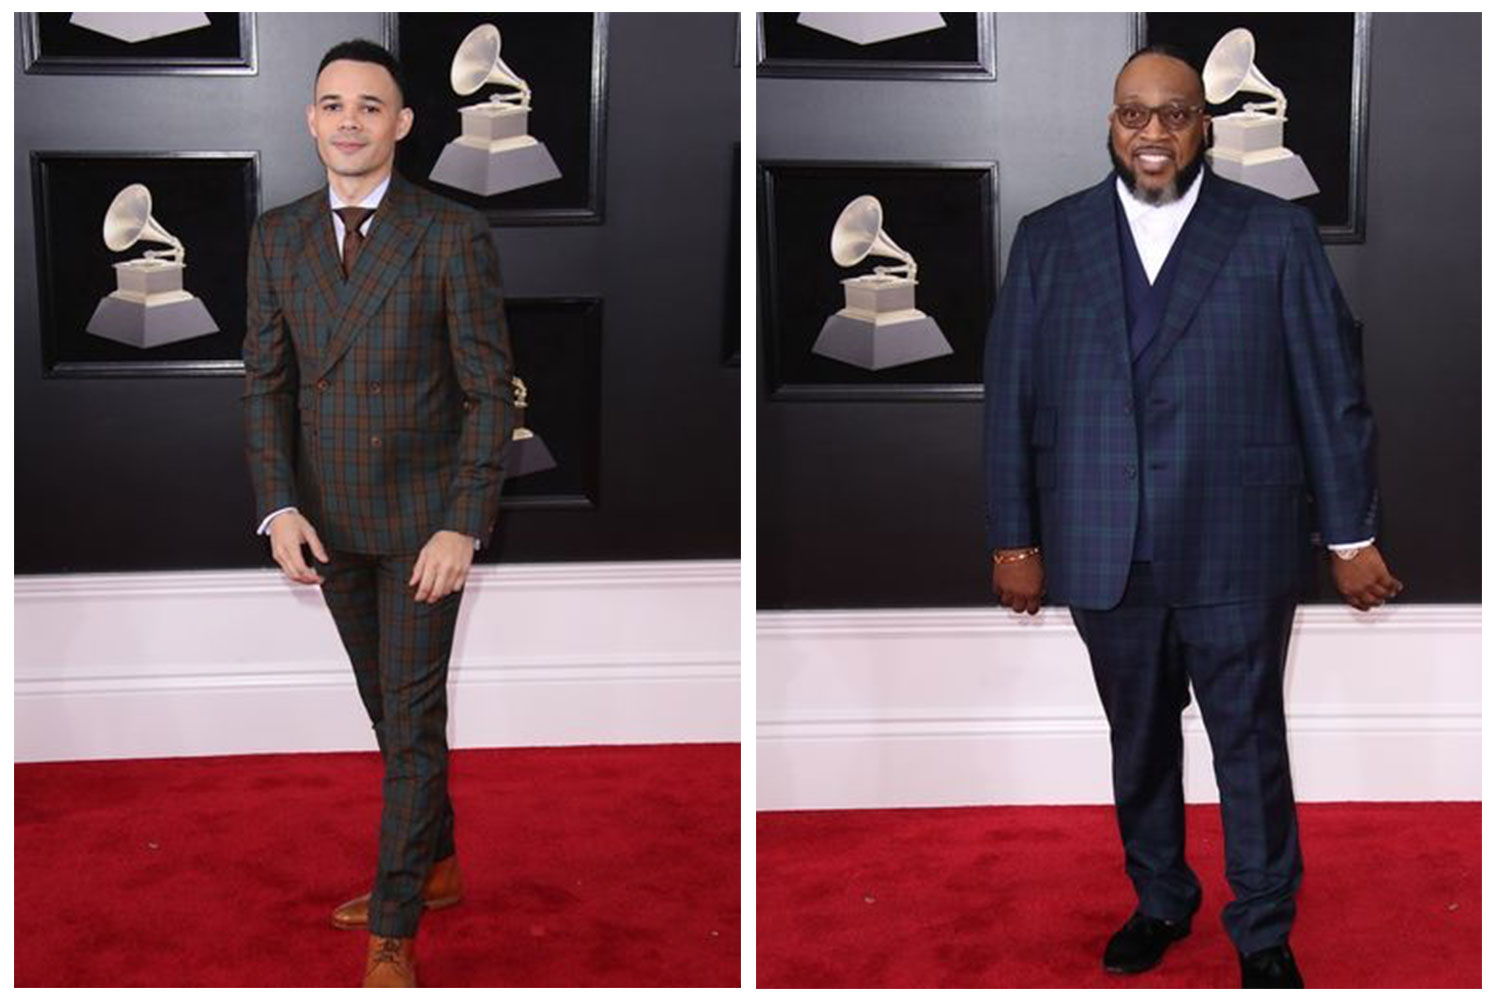 Grammy Award 2018 grammy award 2018 - 4 - Grammy Award 2018 – Men that rocked the red carpet